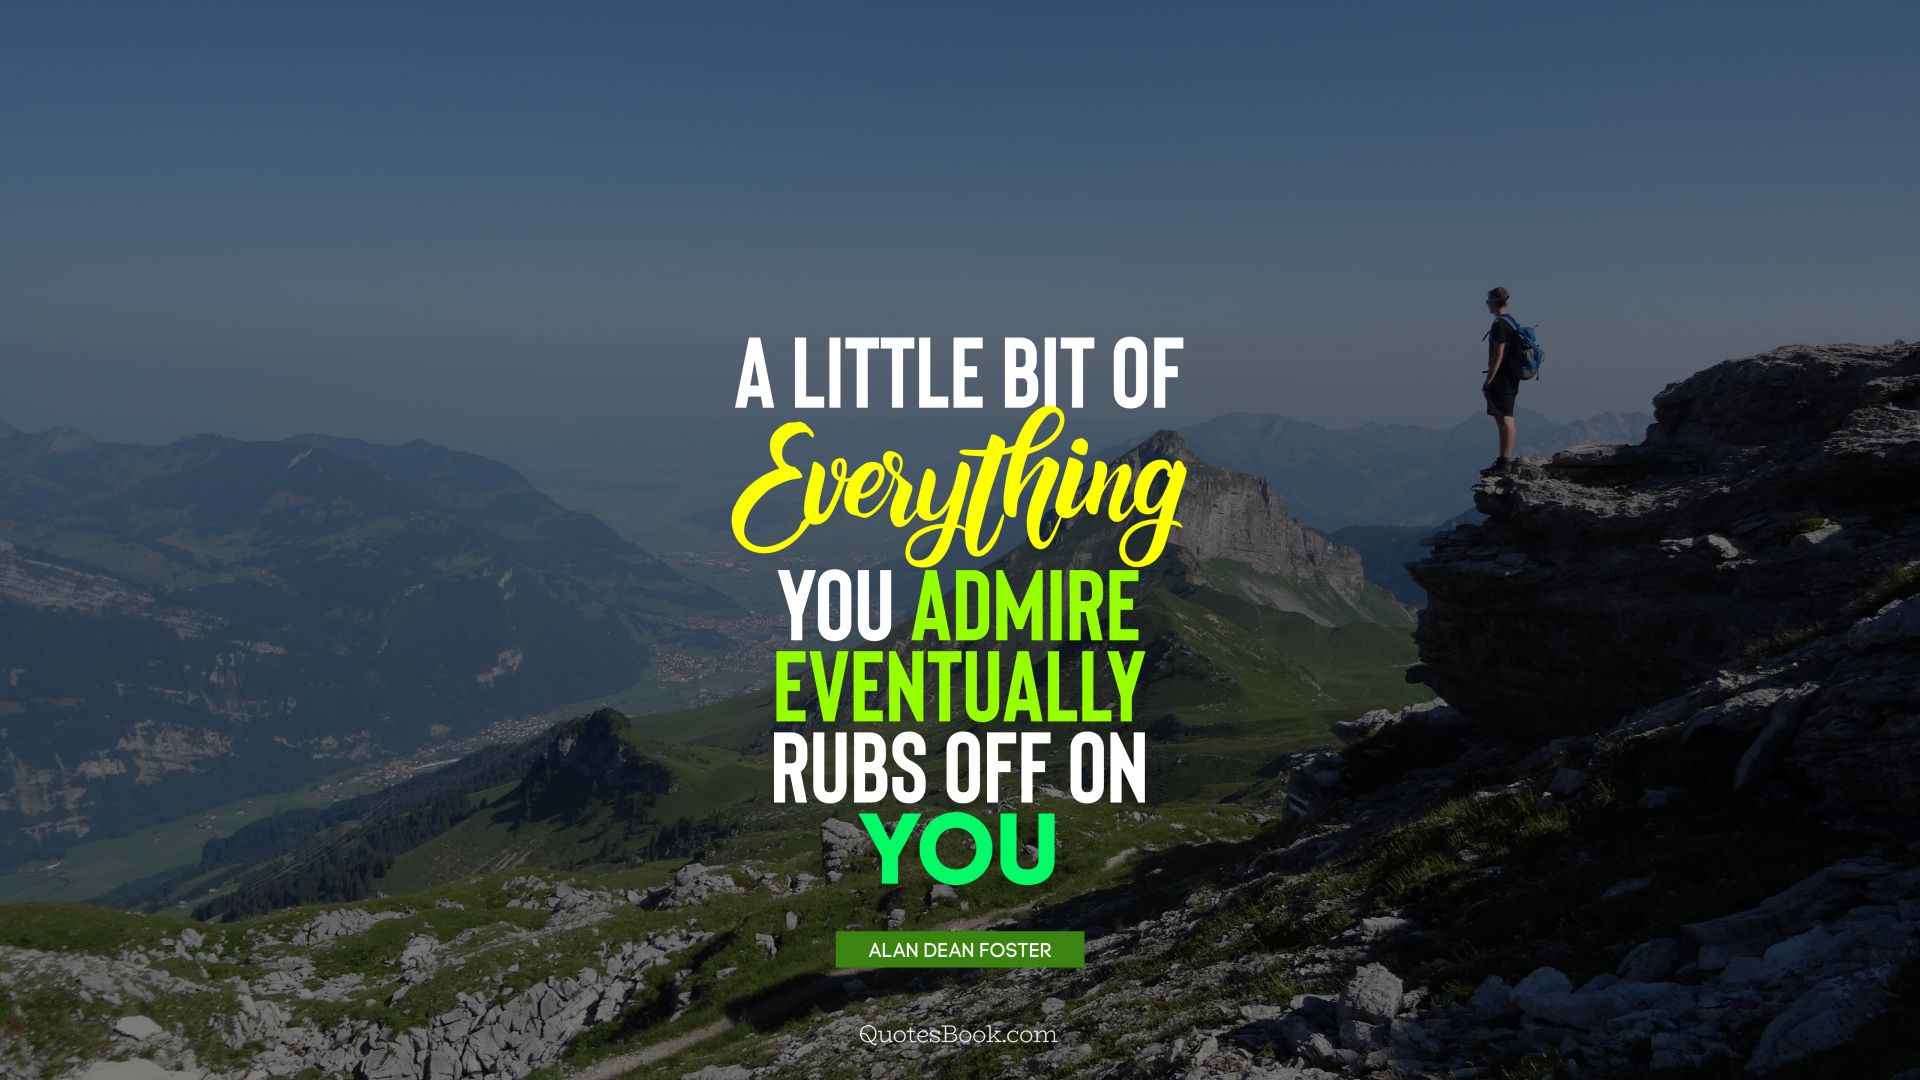 A little bit of everything you admire eventually rubs off on you. - Quote by Alan Dean Foster